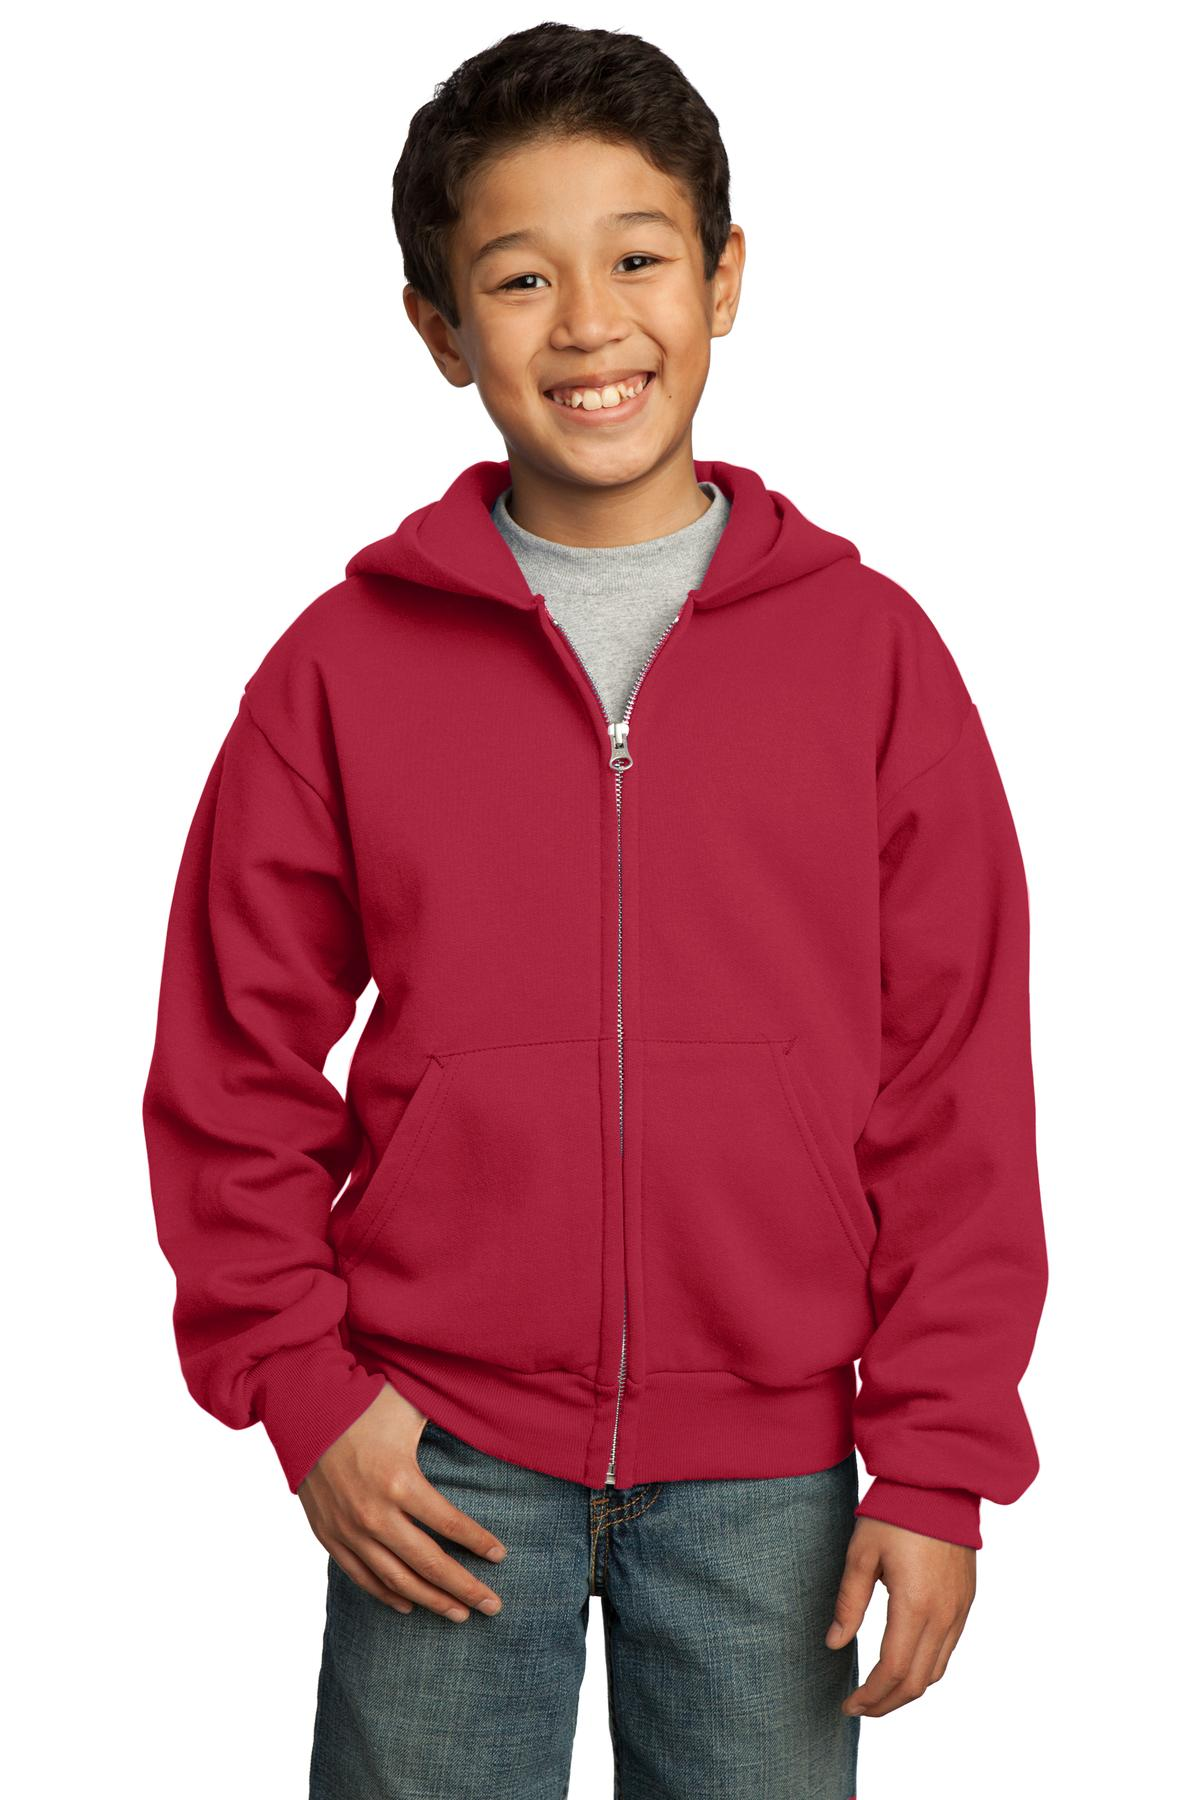 Port & Company ®  - Youth Core Fleece Full-Zip Hooded Sweatshirt.  PC90YZH - Red